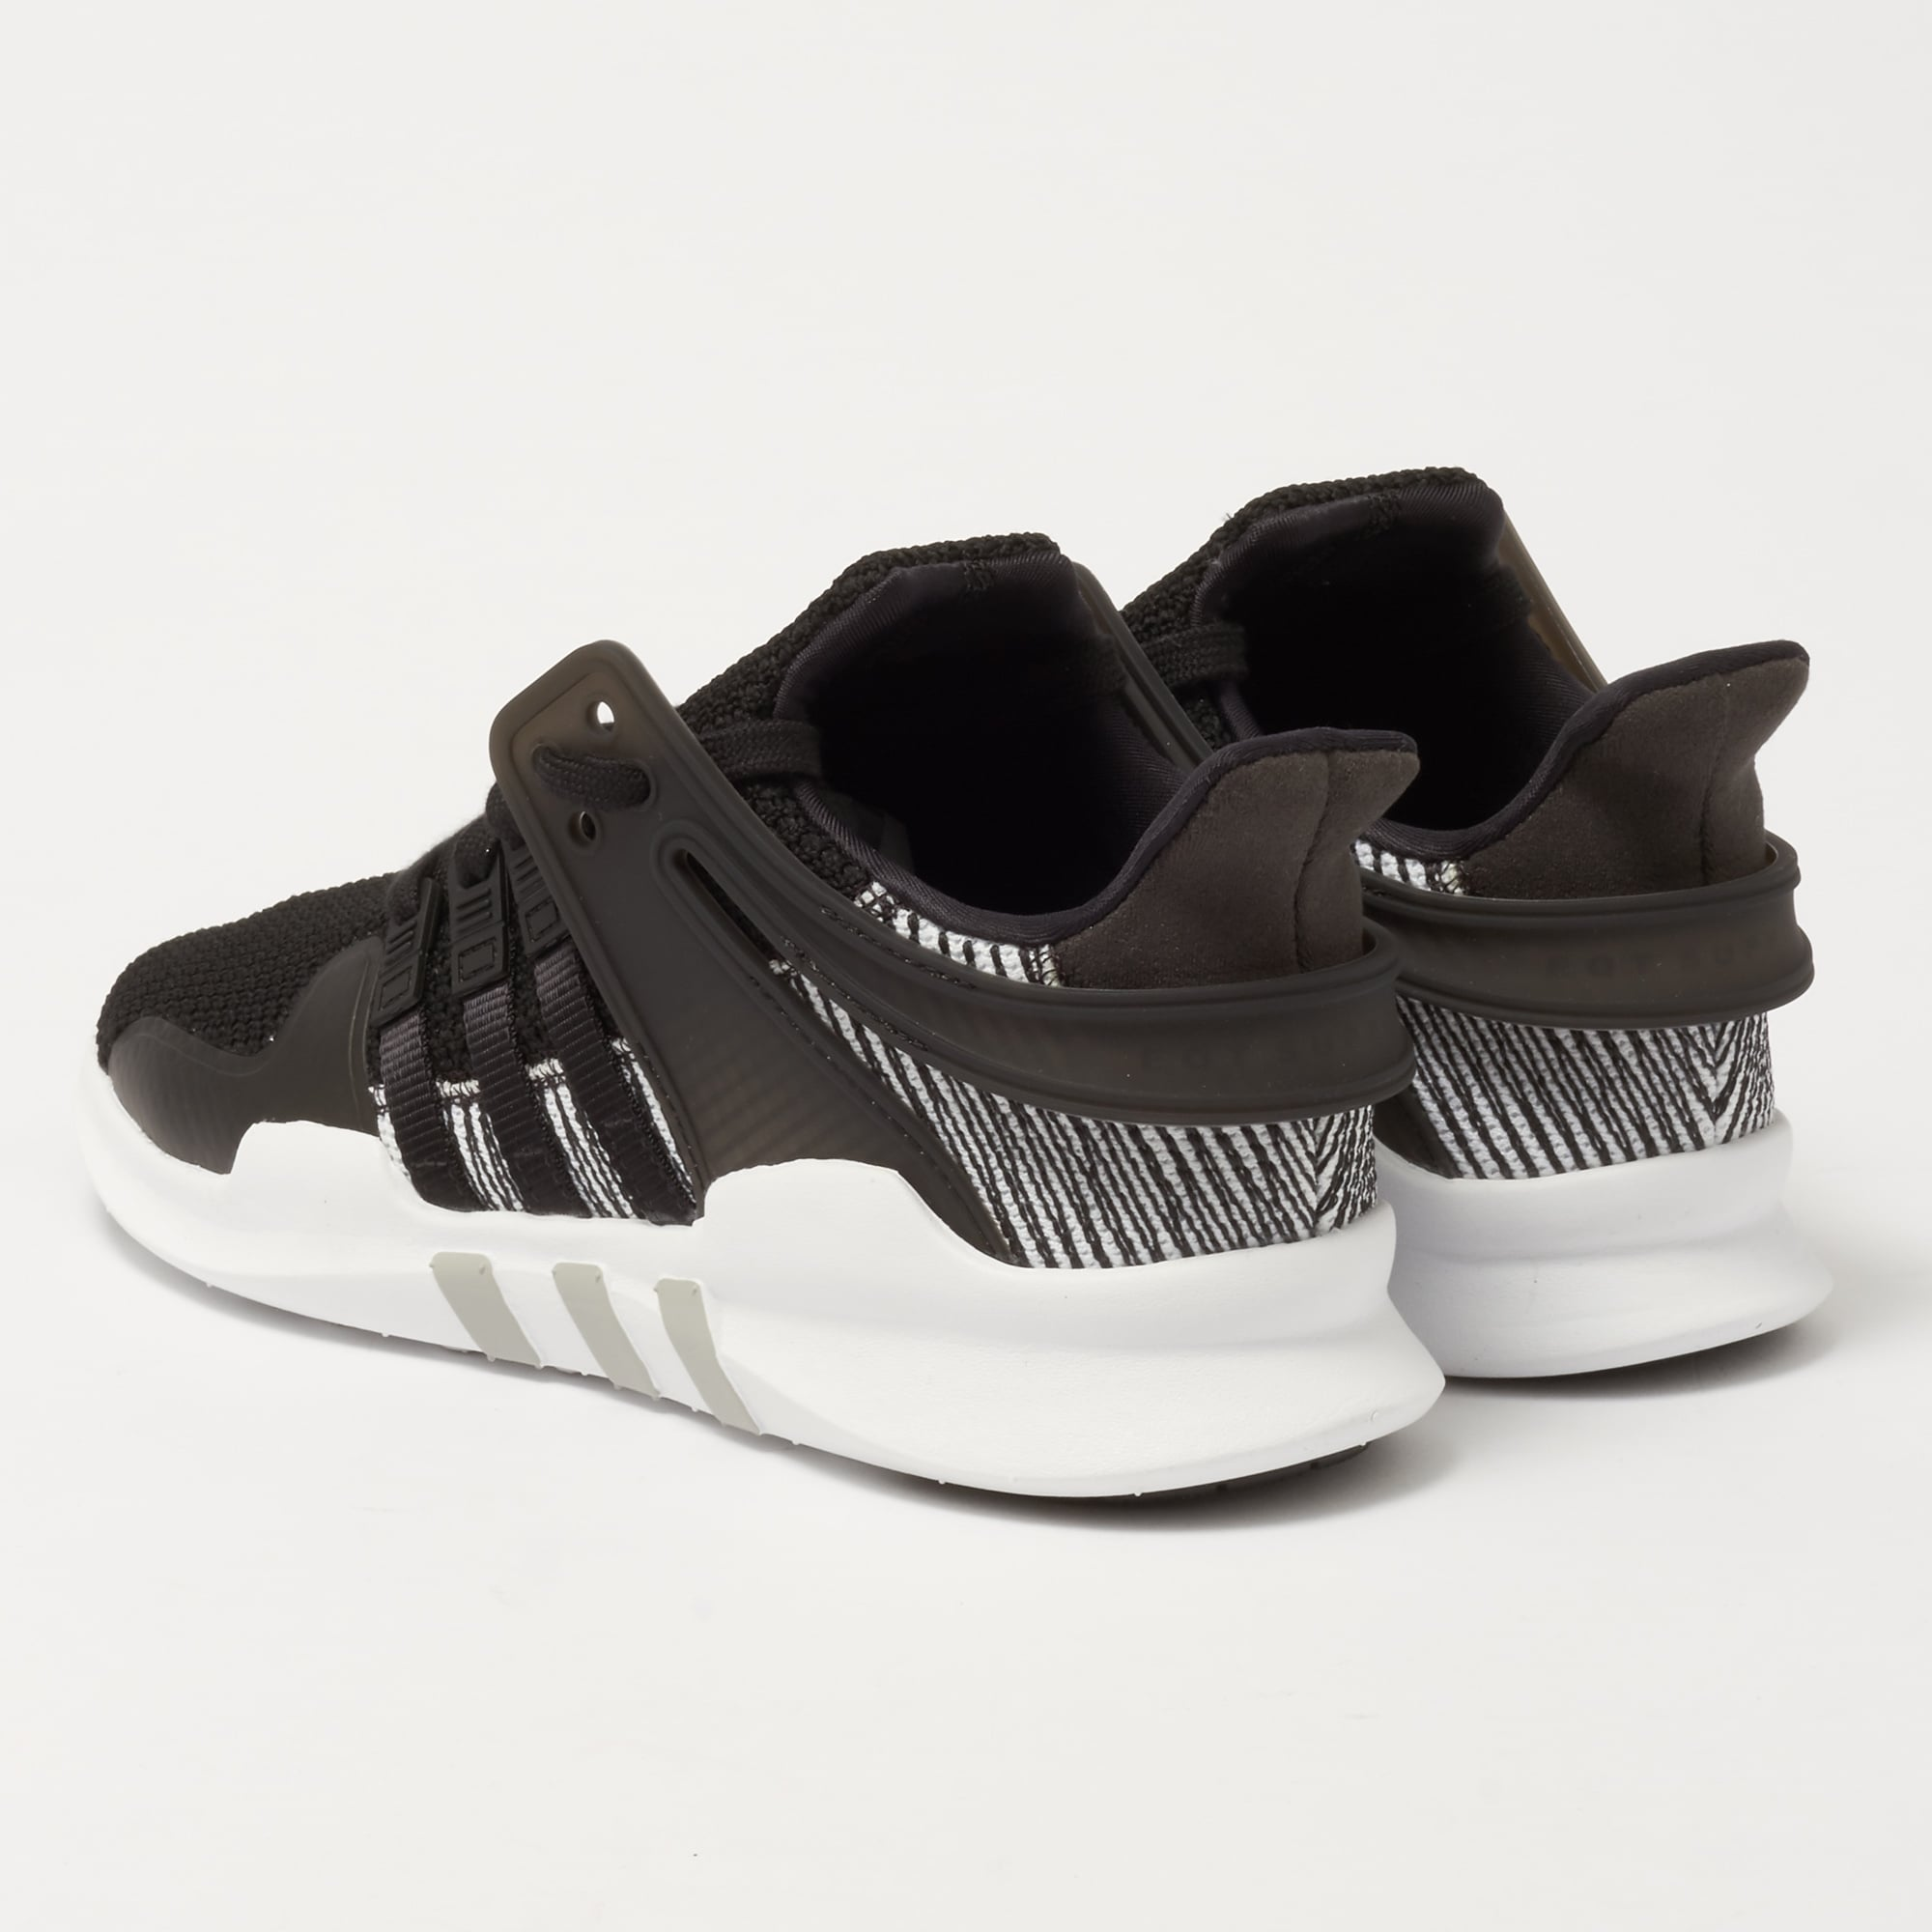 best website dd0a4 f1129 ... top quality eqt support adv core black ftw white 4148e 37a6b